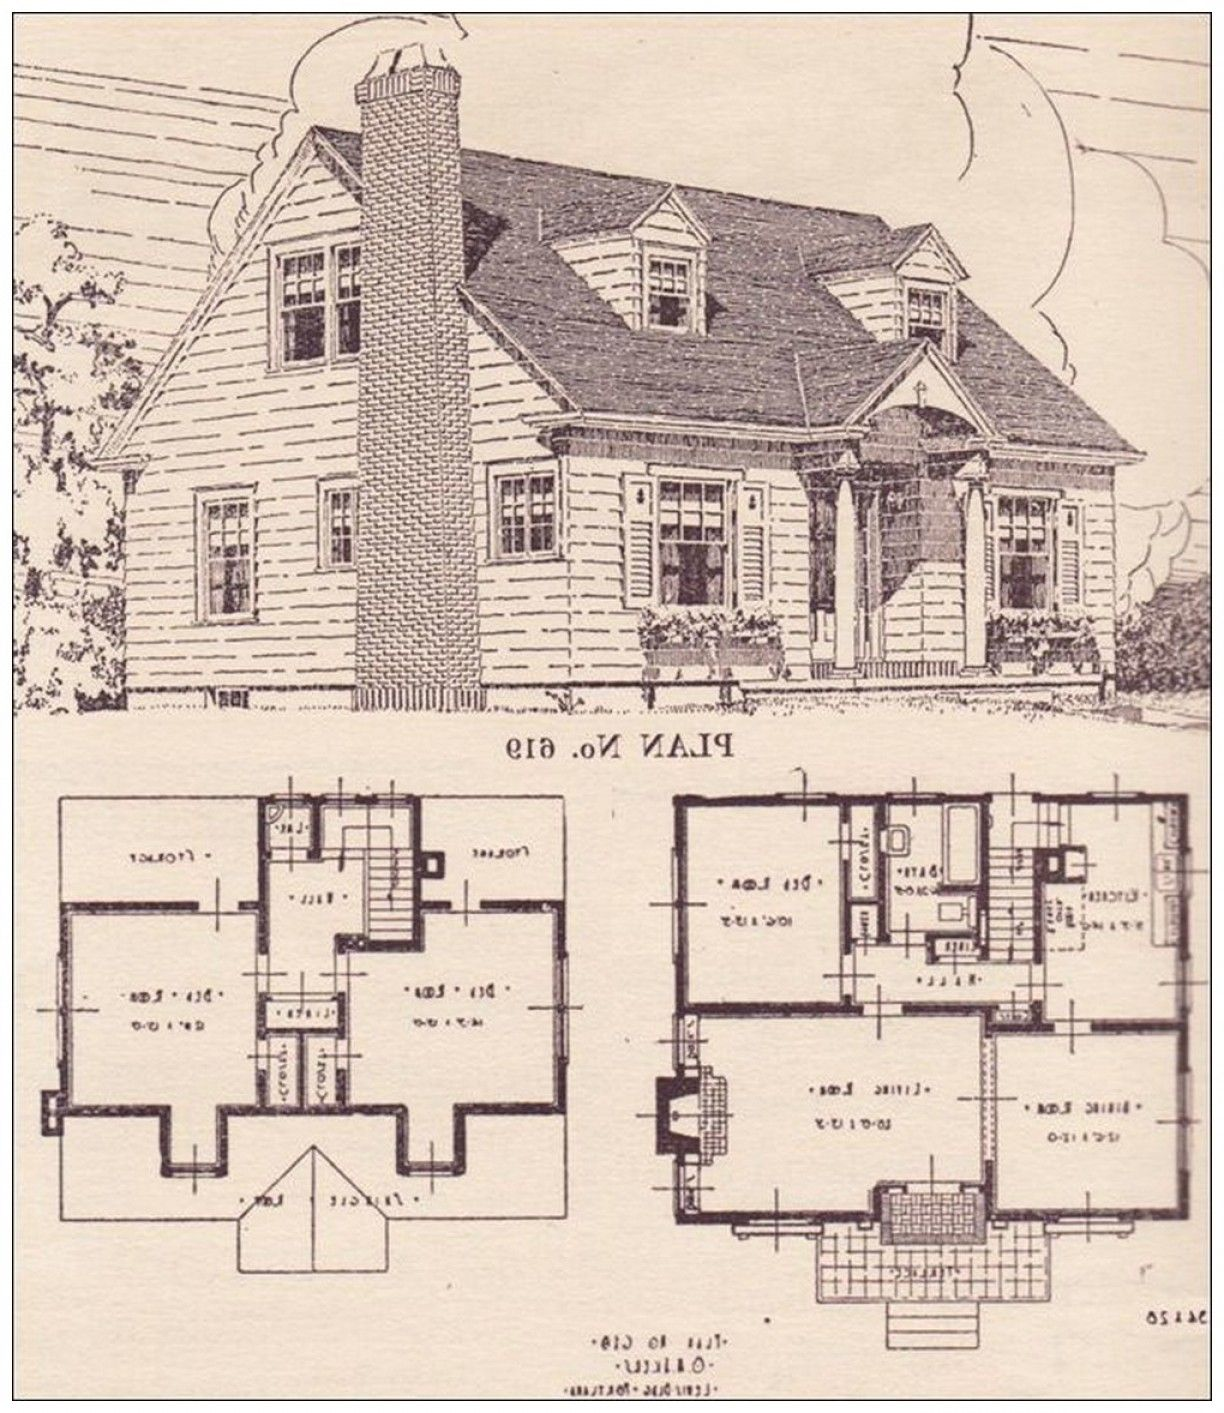 Levittown Cape Cod House Plans S Cape Cod House Plans Contemporary House Plans Cape Cod Plan Interior Cape Cod House Plans Cape Cod House Colonial House Plans